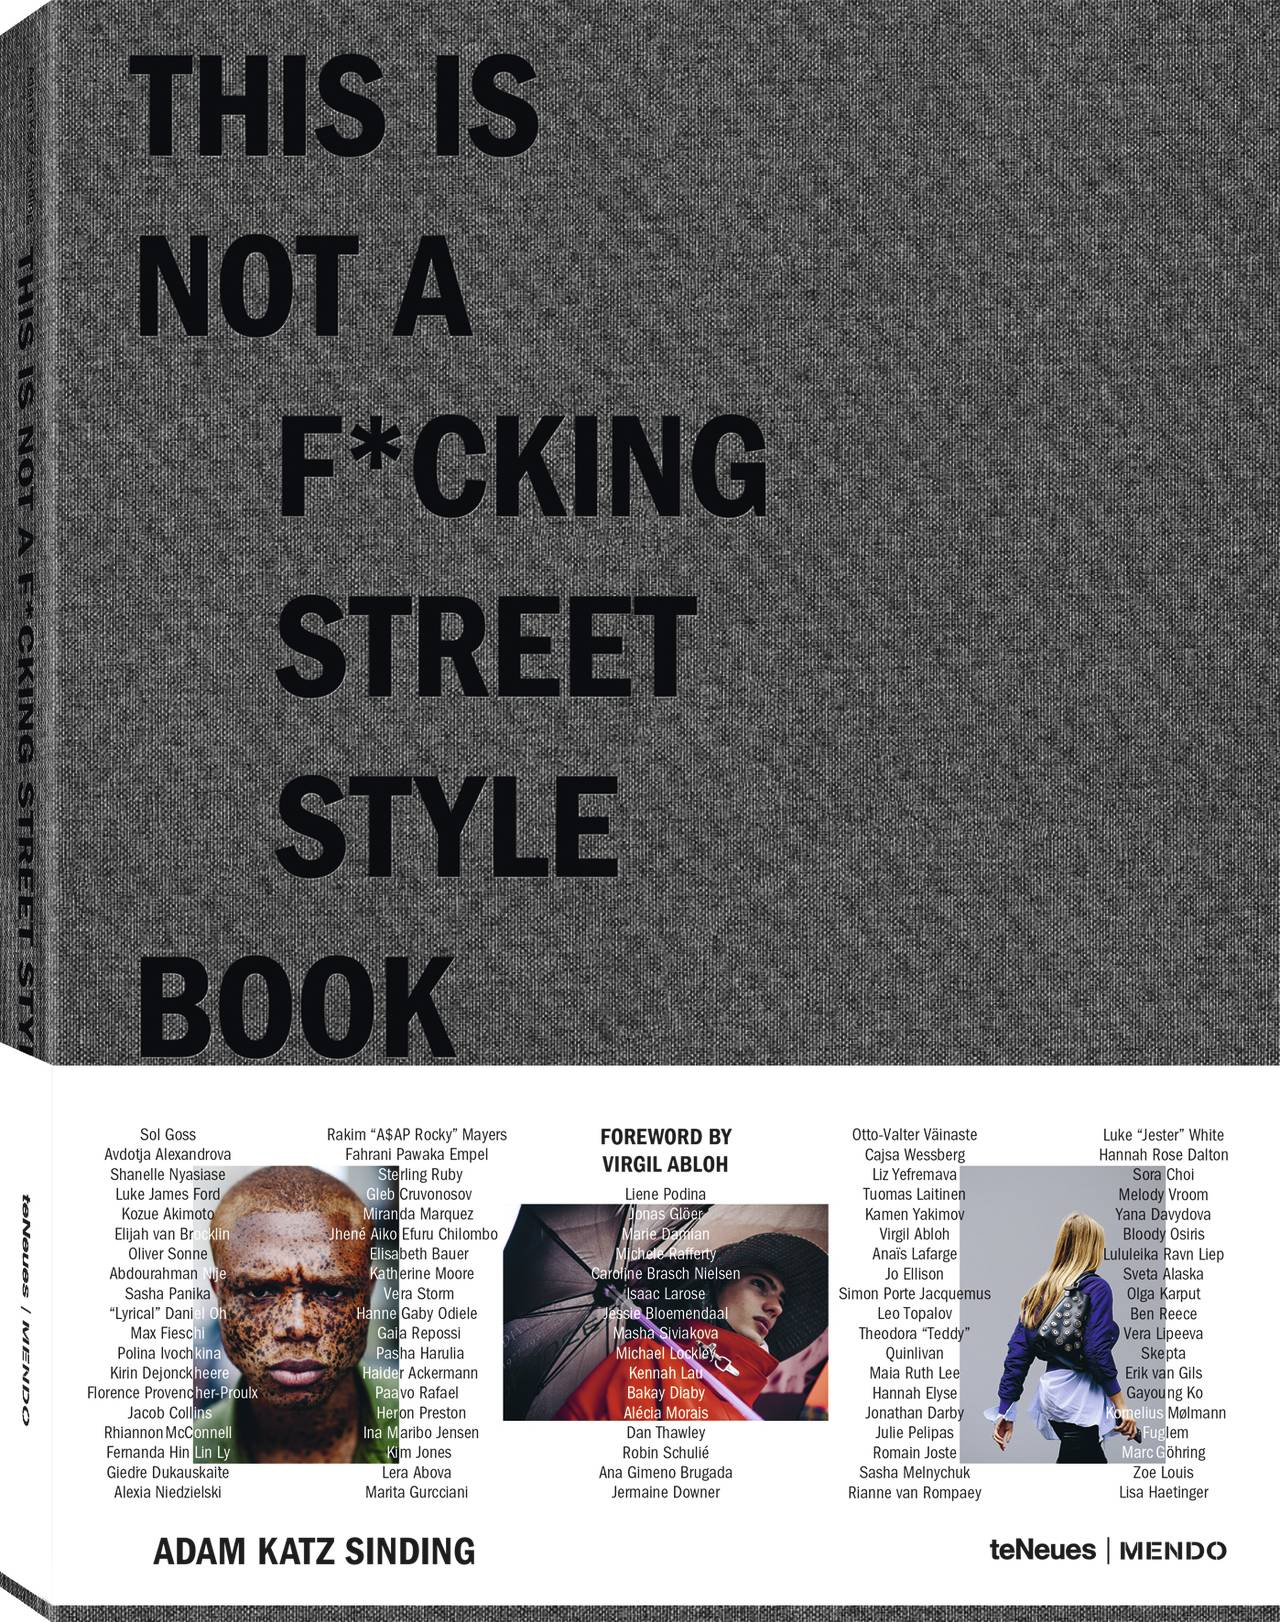 © This is not a f*cking Street Style Book by Adam Katz Sinding & MENDO, to be published by teNeues in February 2018, www.teneues.com, www.mendo.nl